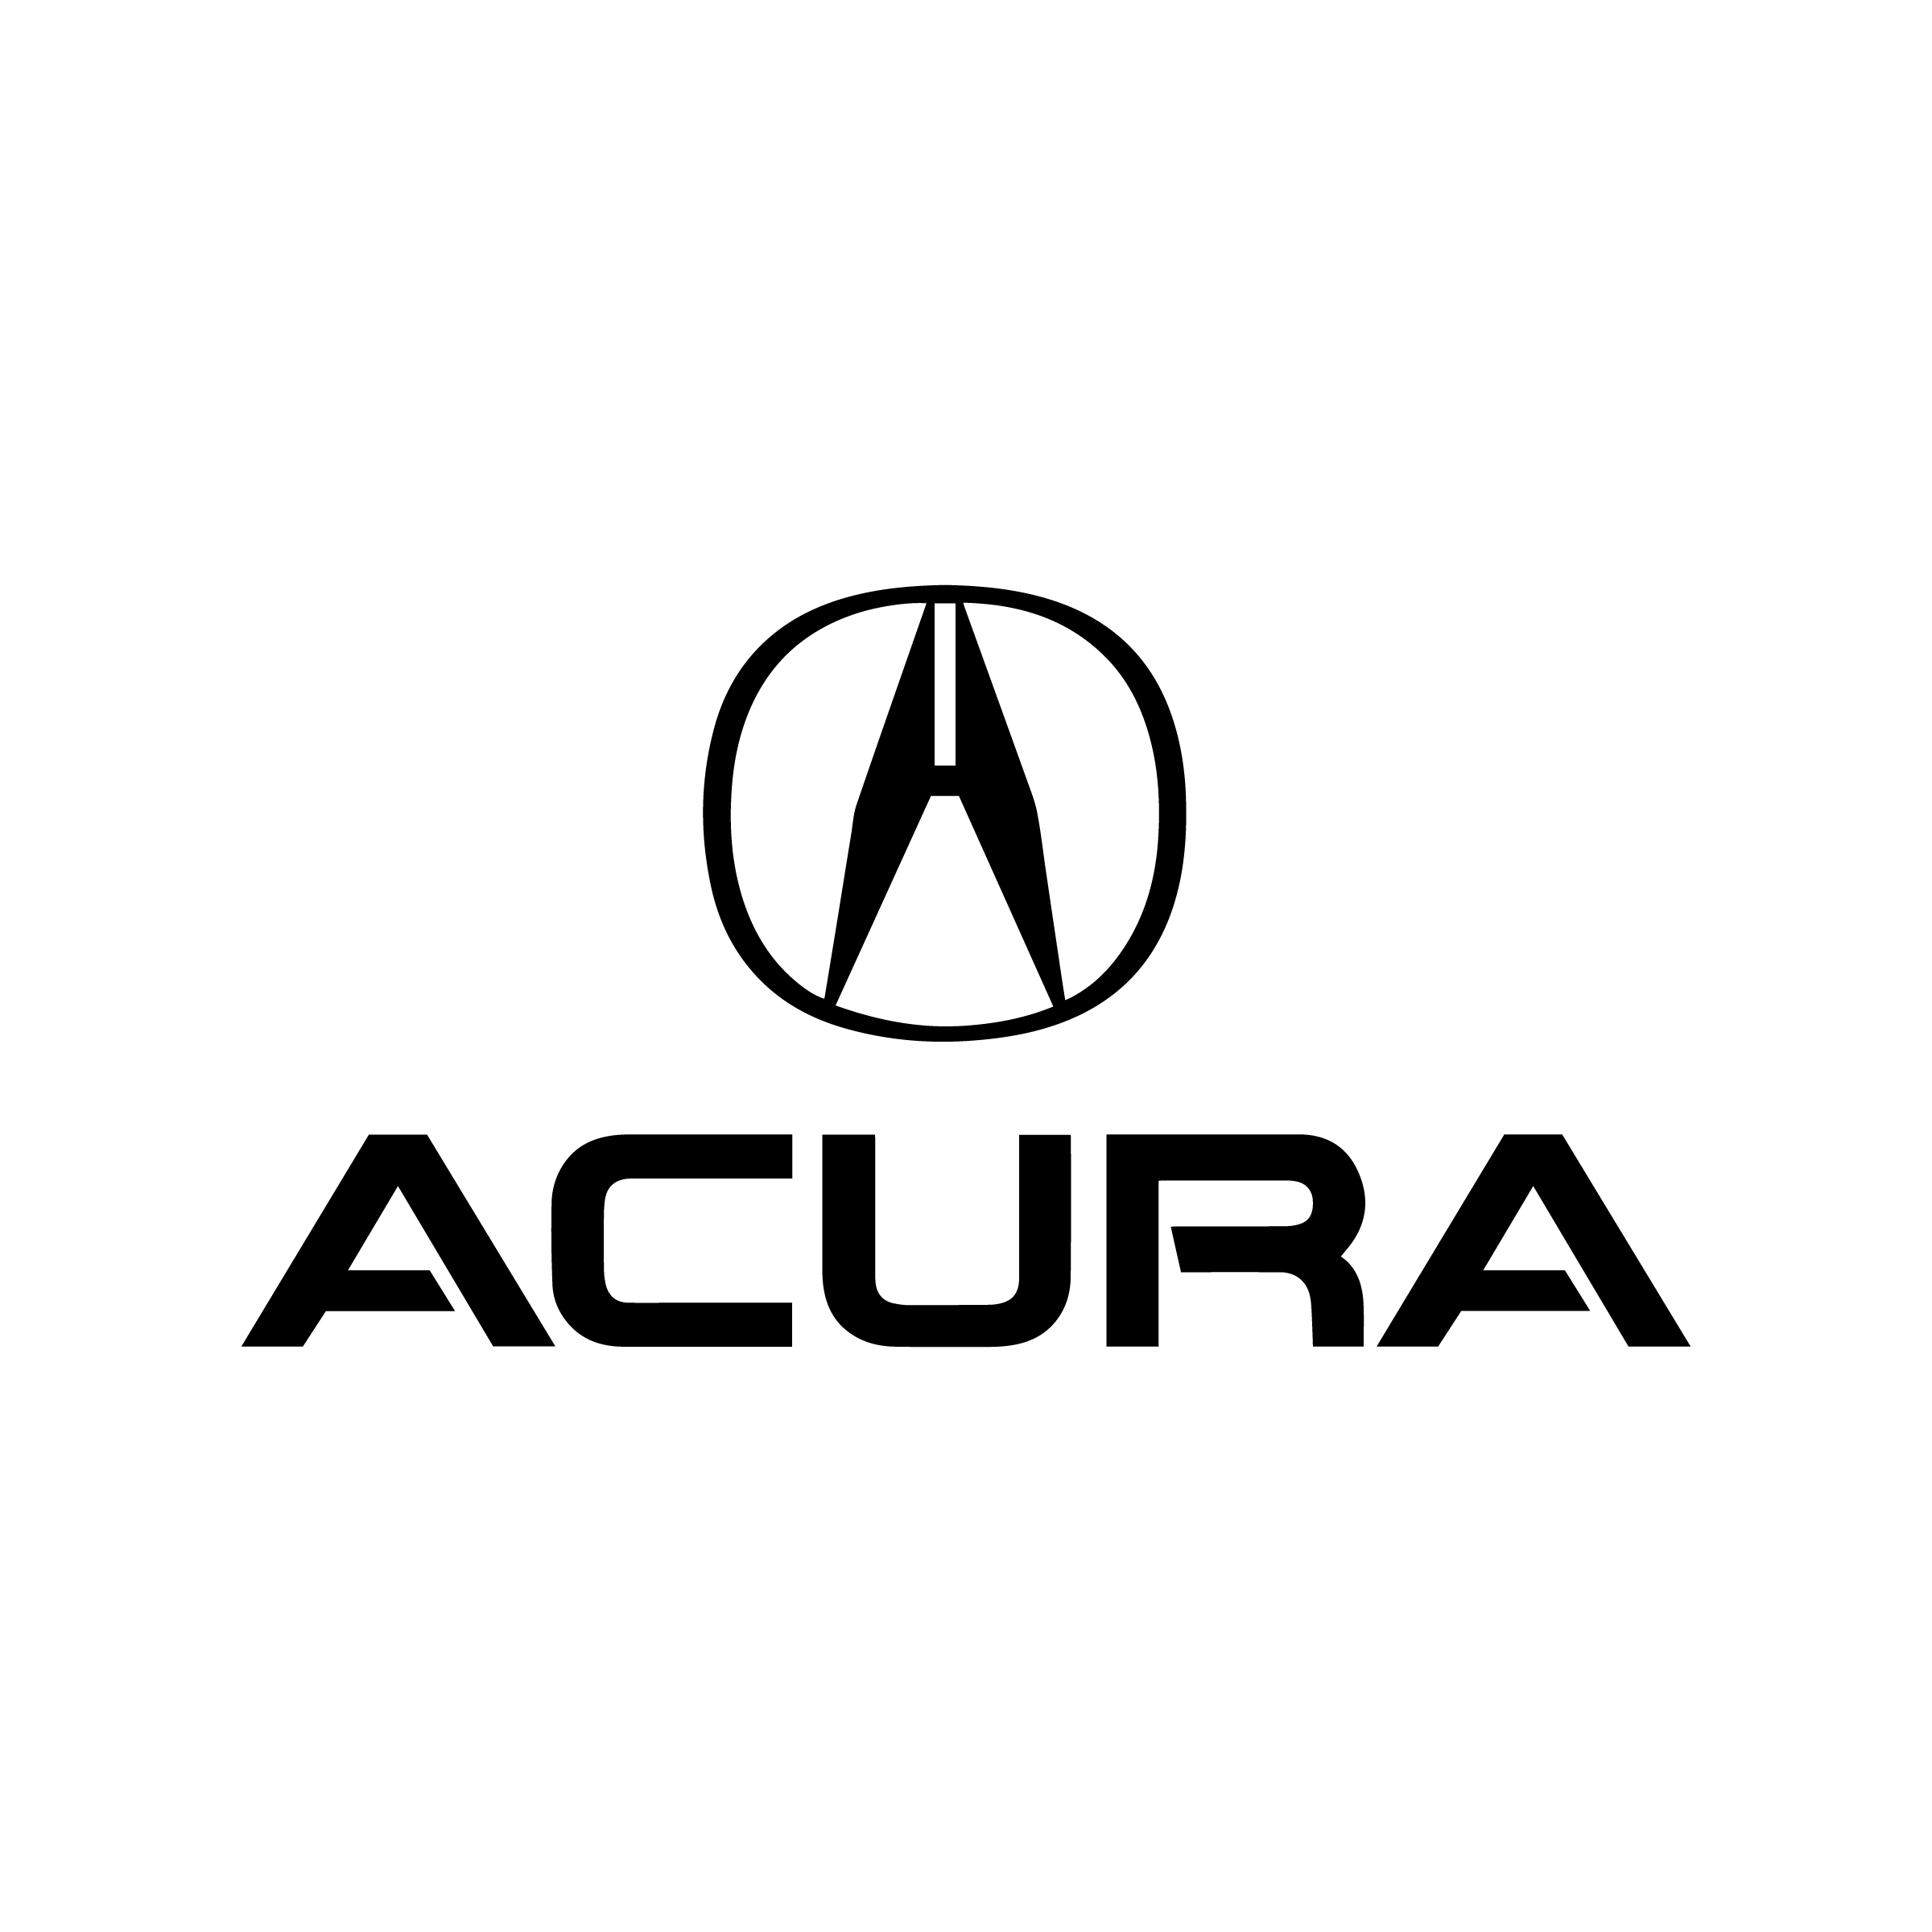 acura-01.png